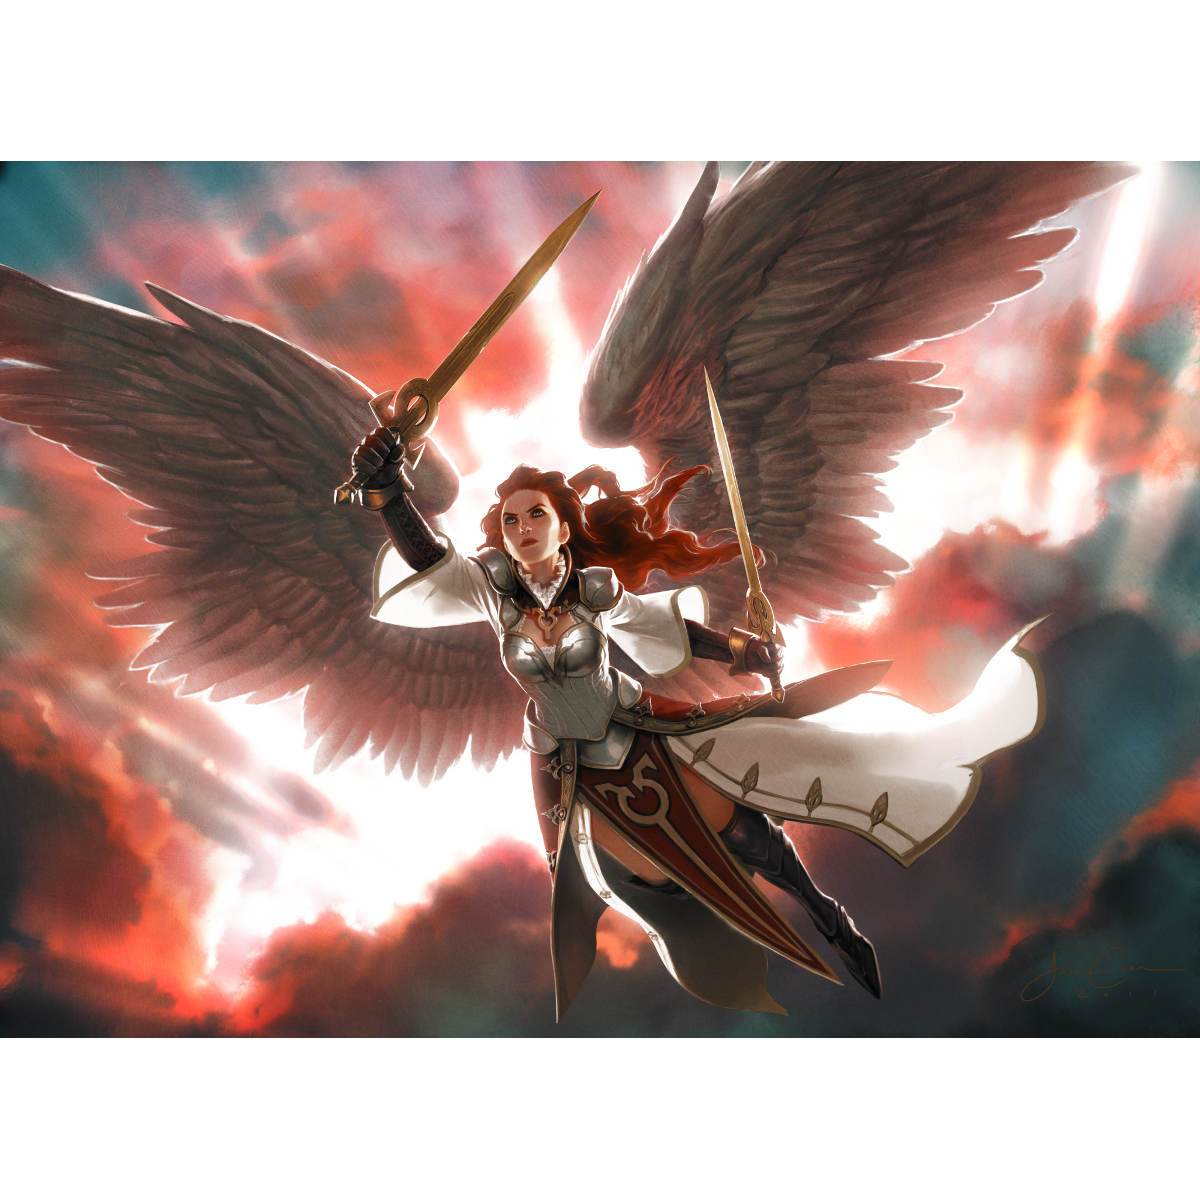 Gisela, Blade of Goldnight Print - Print - Original Magic Art - Accessories for Magic the Gathering and other card games